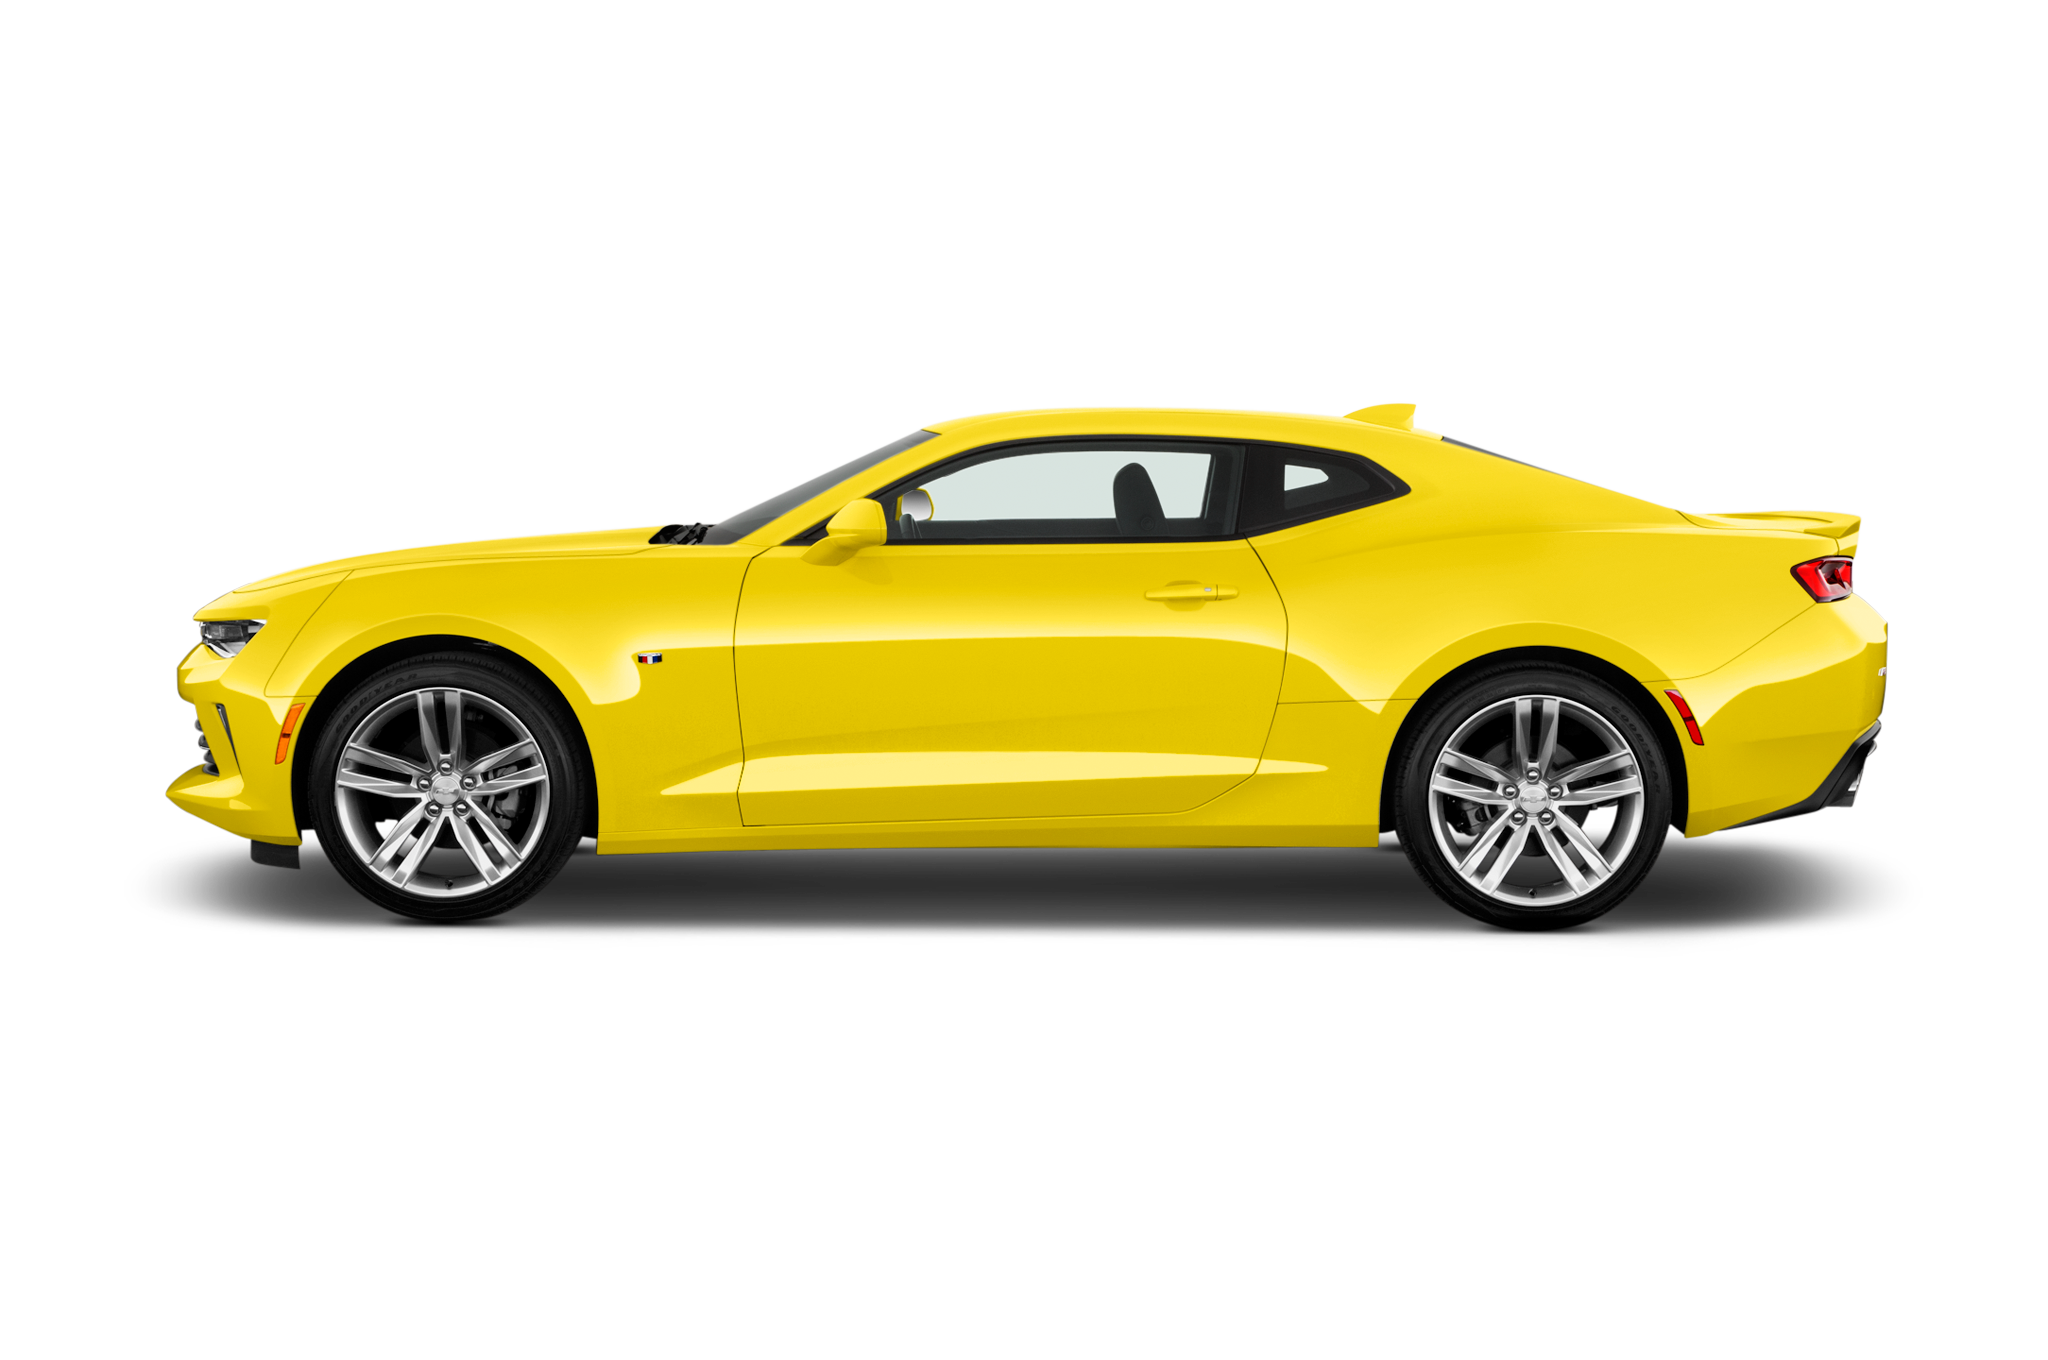 Chevrolet clipart yellow car Bumblebee Chevrolet Yellow PNG Clipart